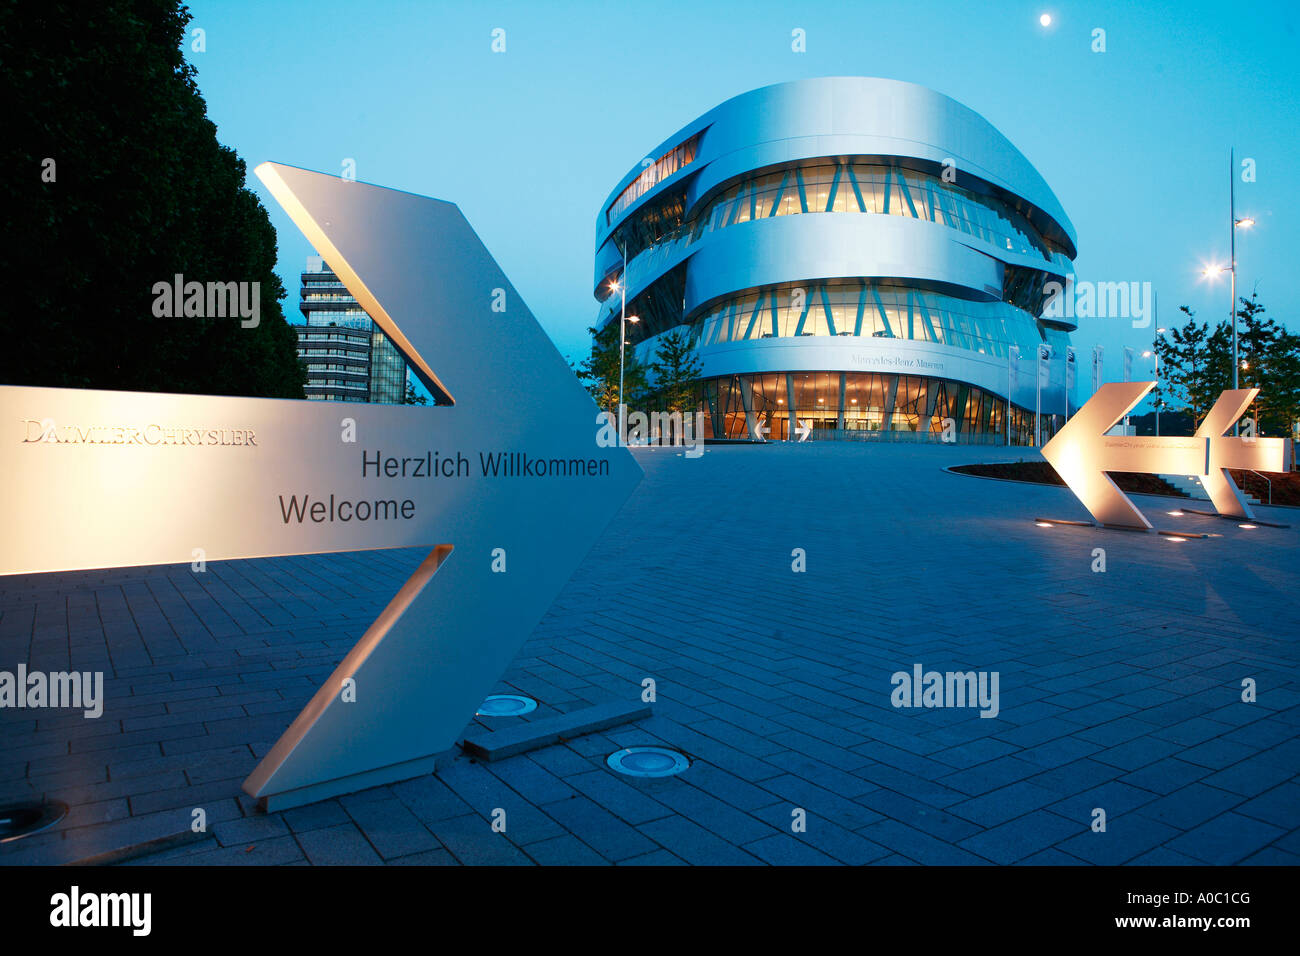 mercedes benz museum, mercedes-benz world in stuttgart at night